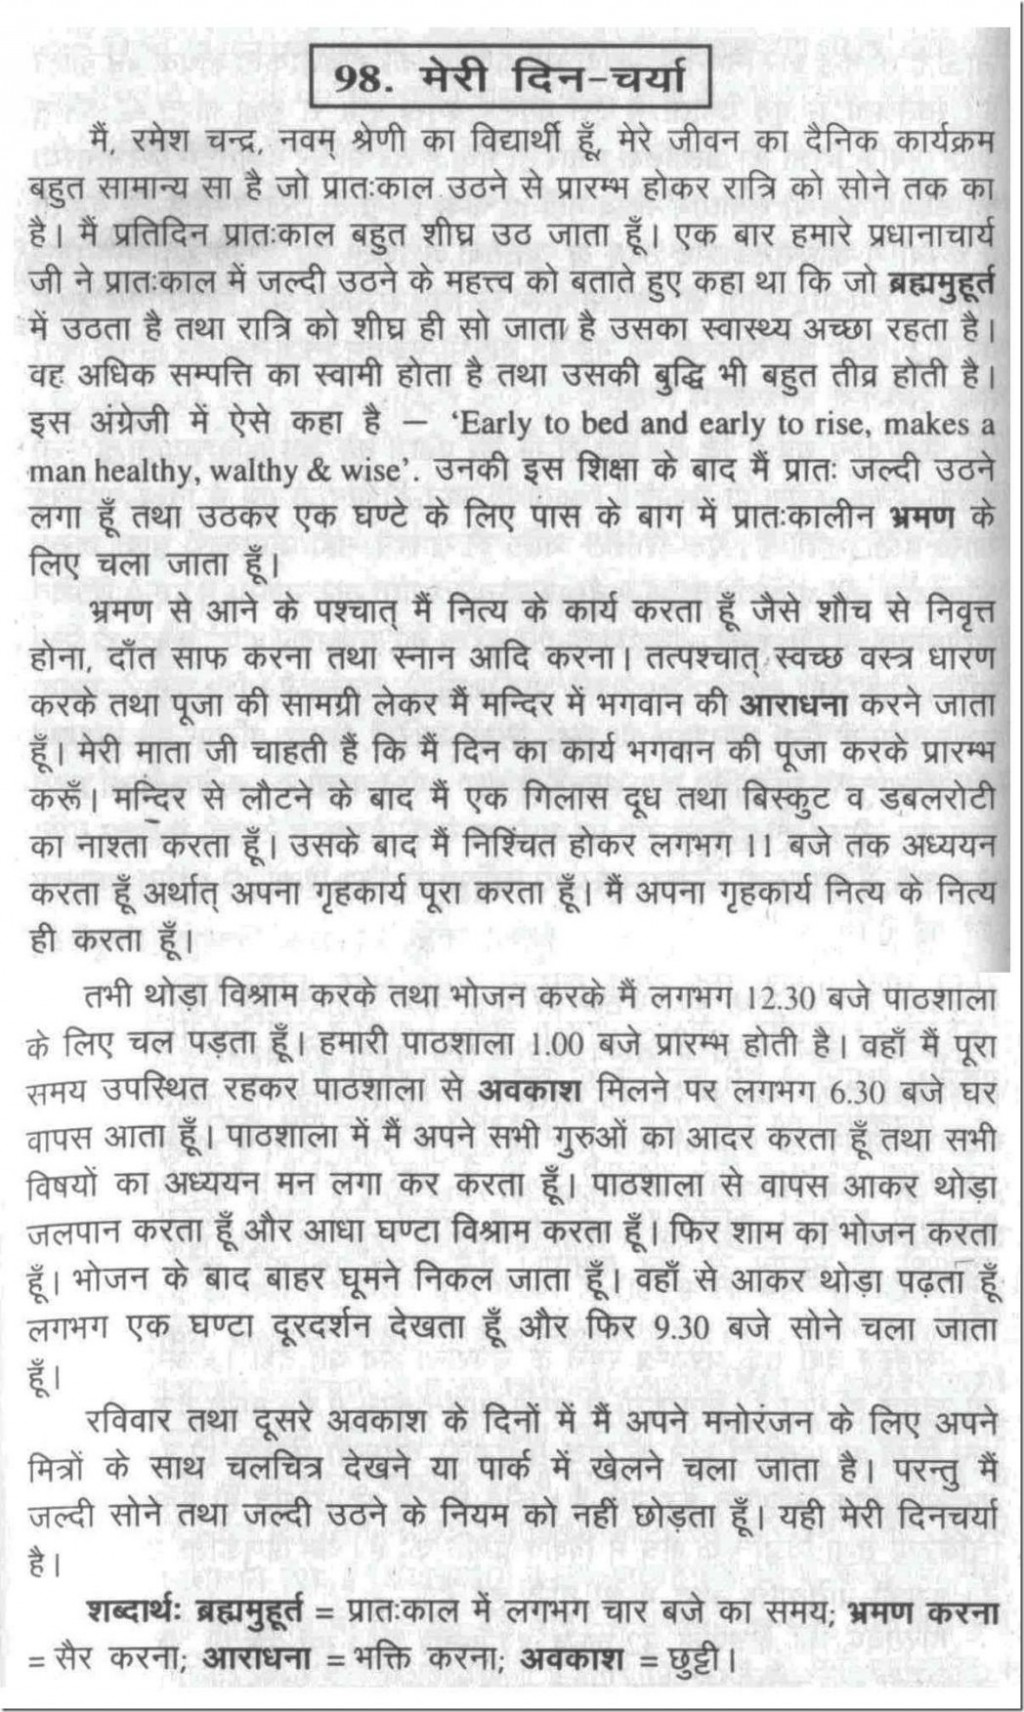 003 My Mother Essay Daily Routine In Hindi Topics Writing Marathi 100098 English 1048x1753 Unique On Of Housewife June 21 Life Large